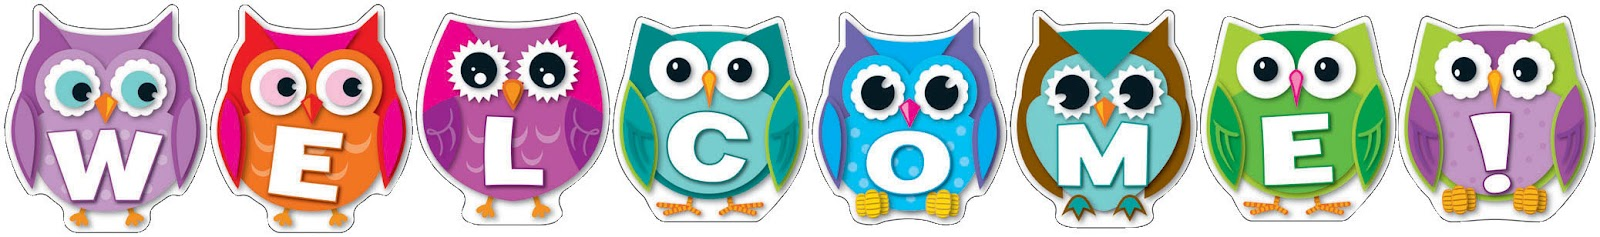 Welcome-owl-clipart.jpg